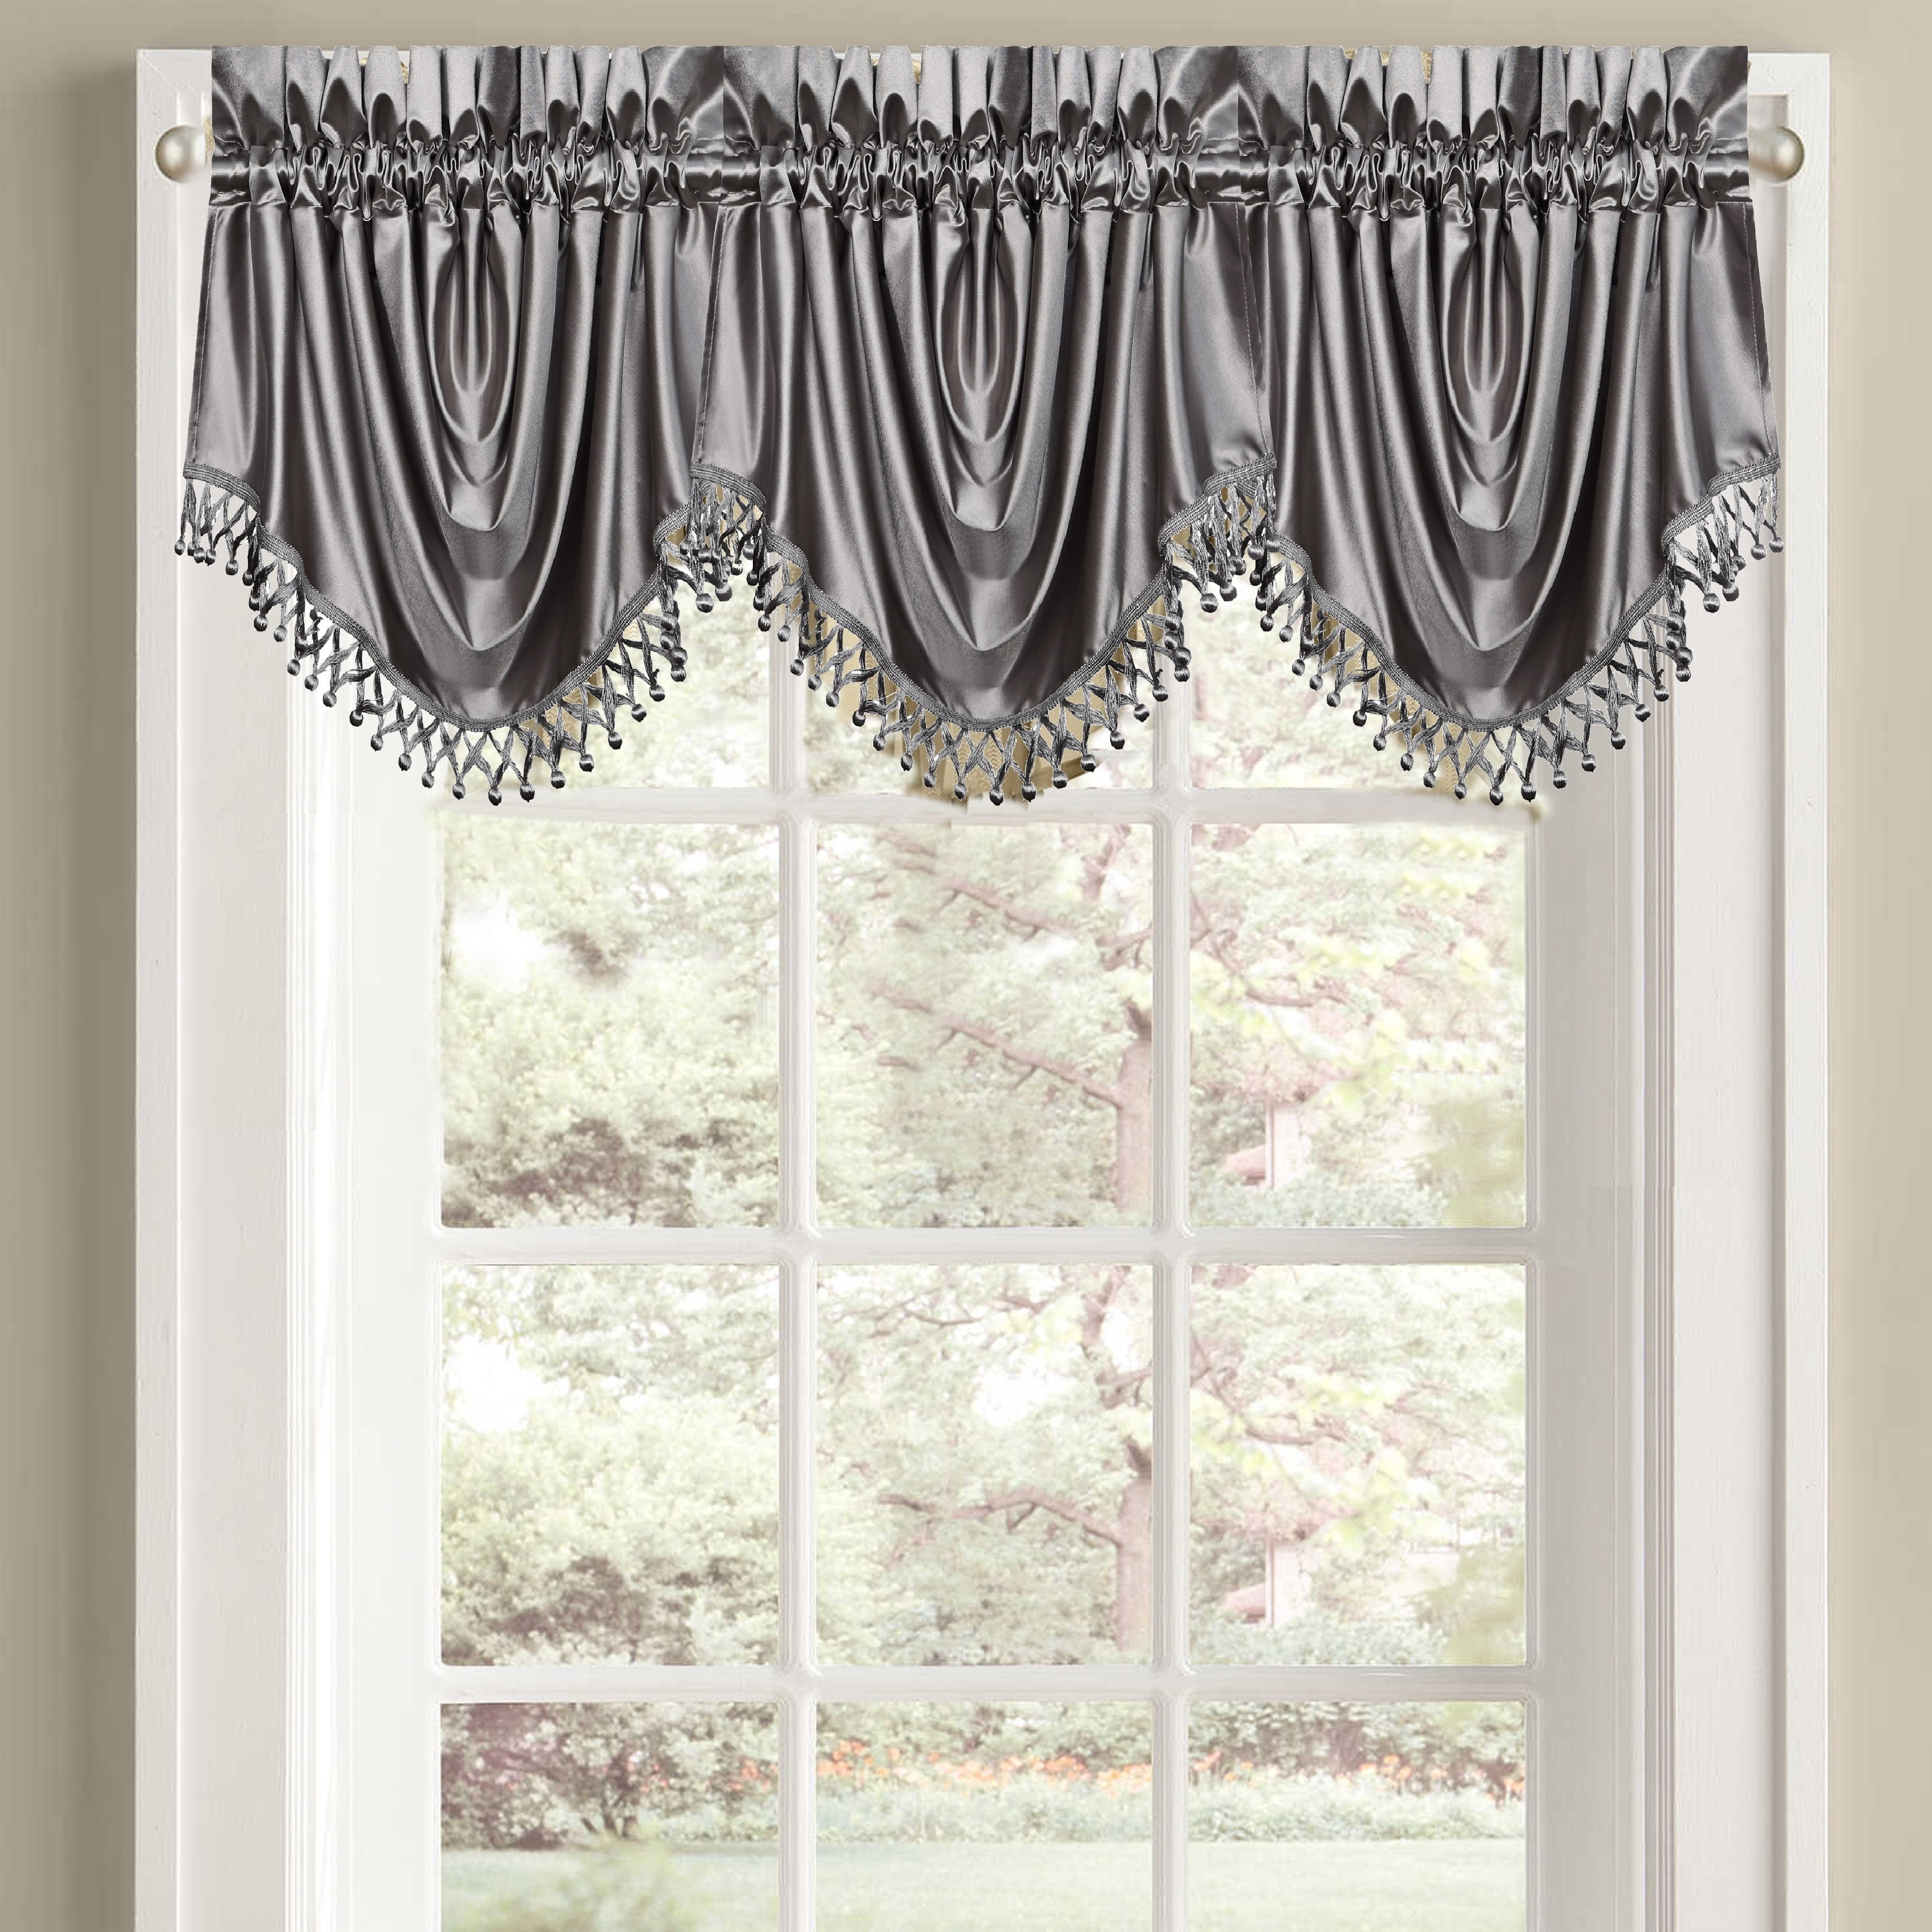 lined orders solid juline park embellished faux over product overstock on free trim home tassel to garden valance silk madison shipping waterfall how hang